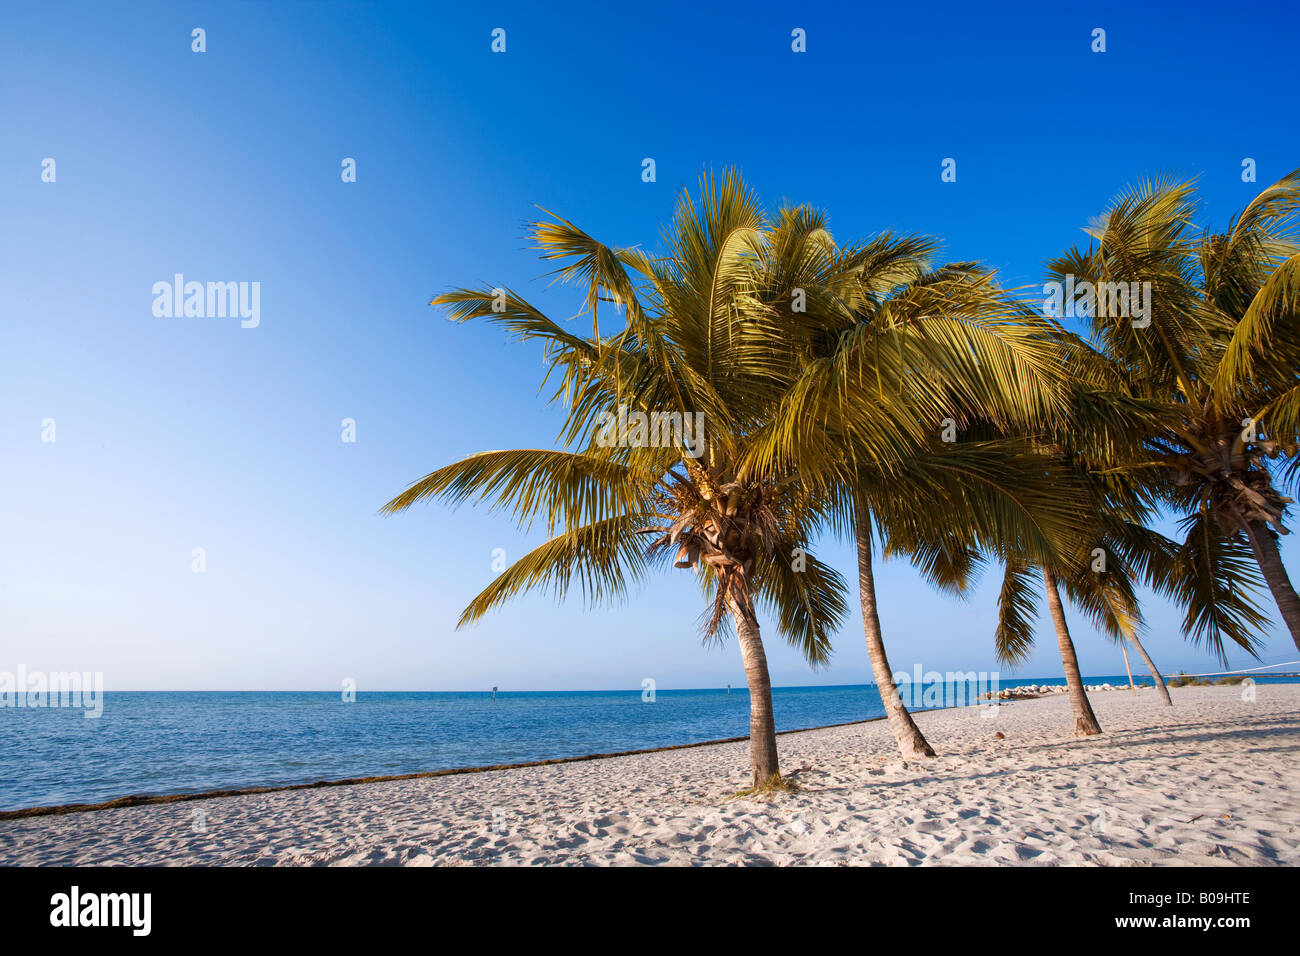 Tropical beach with palm trees in Key West, Florida, USA Stock Photo